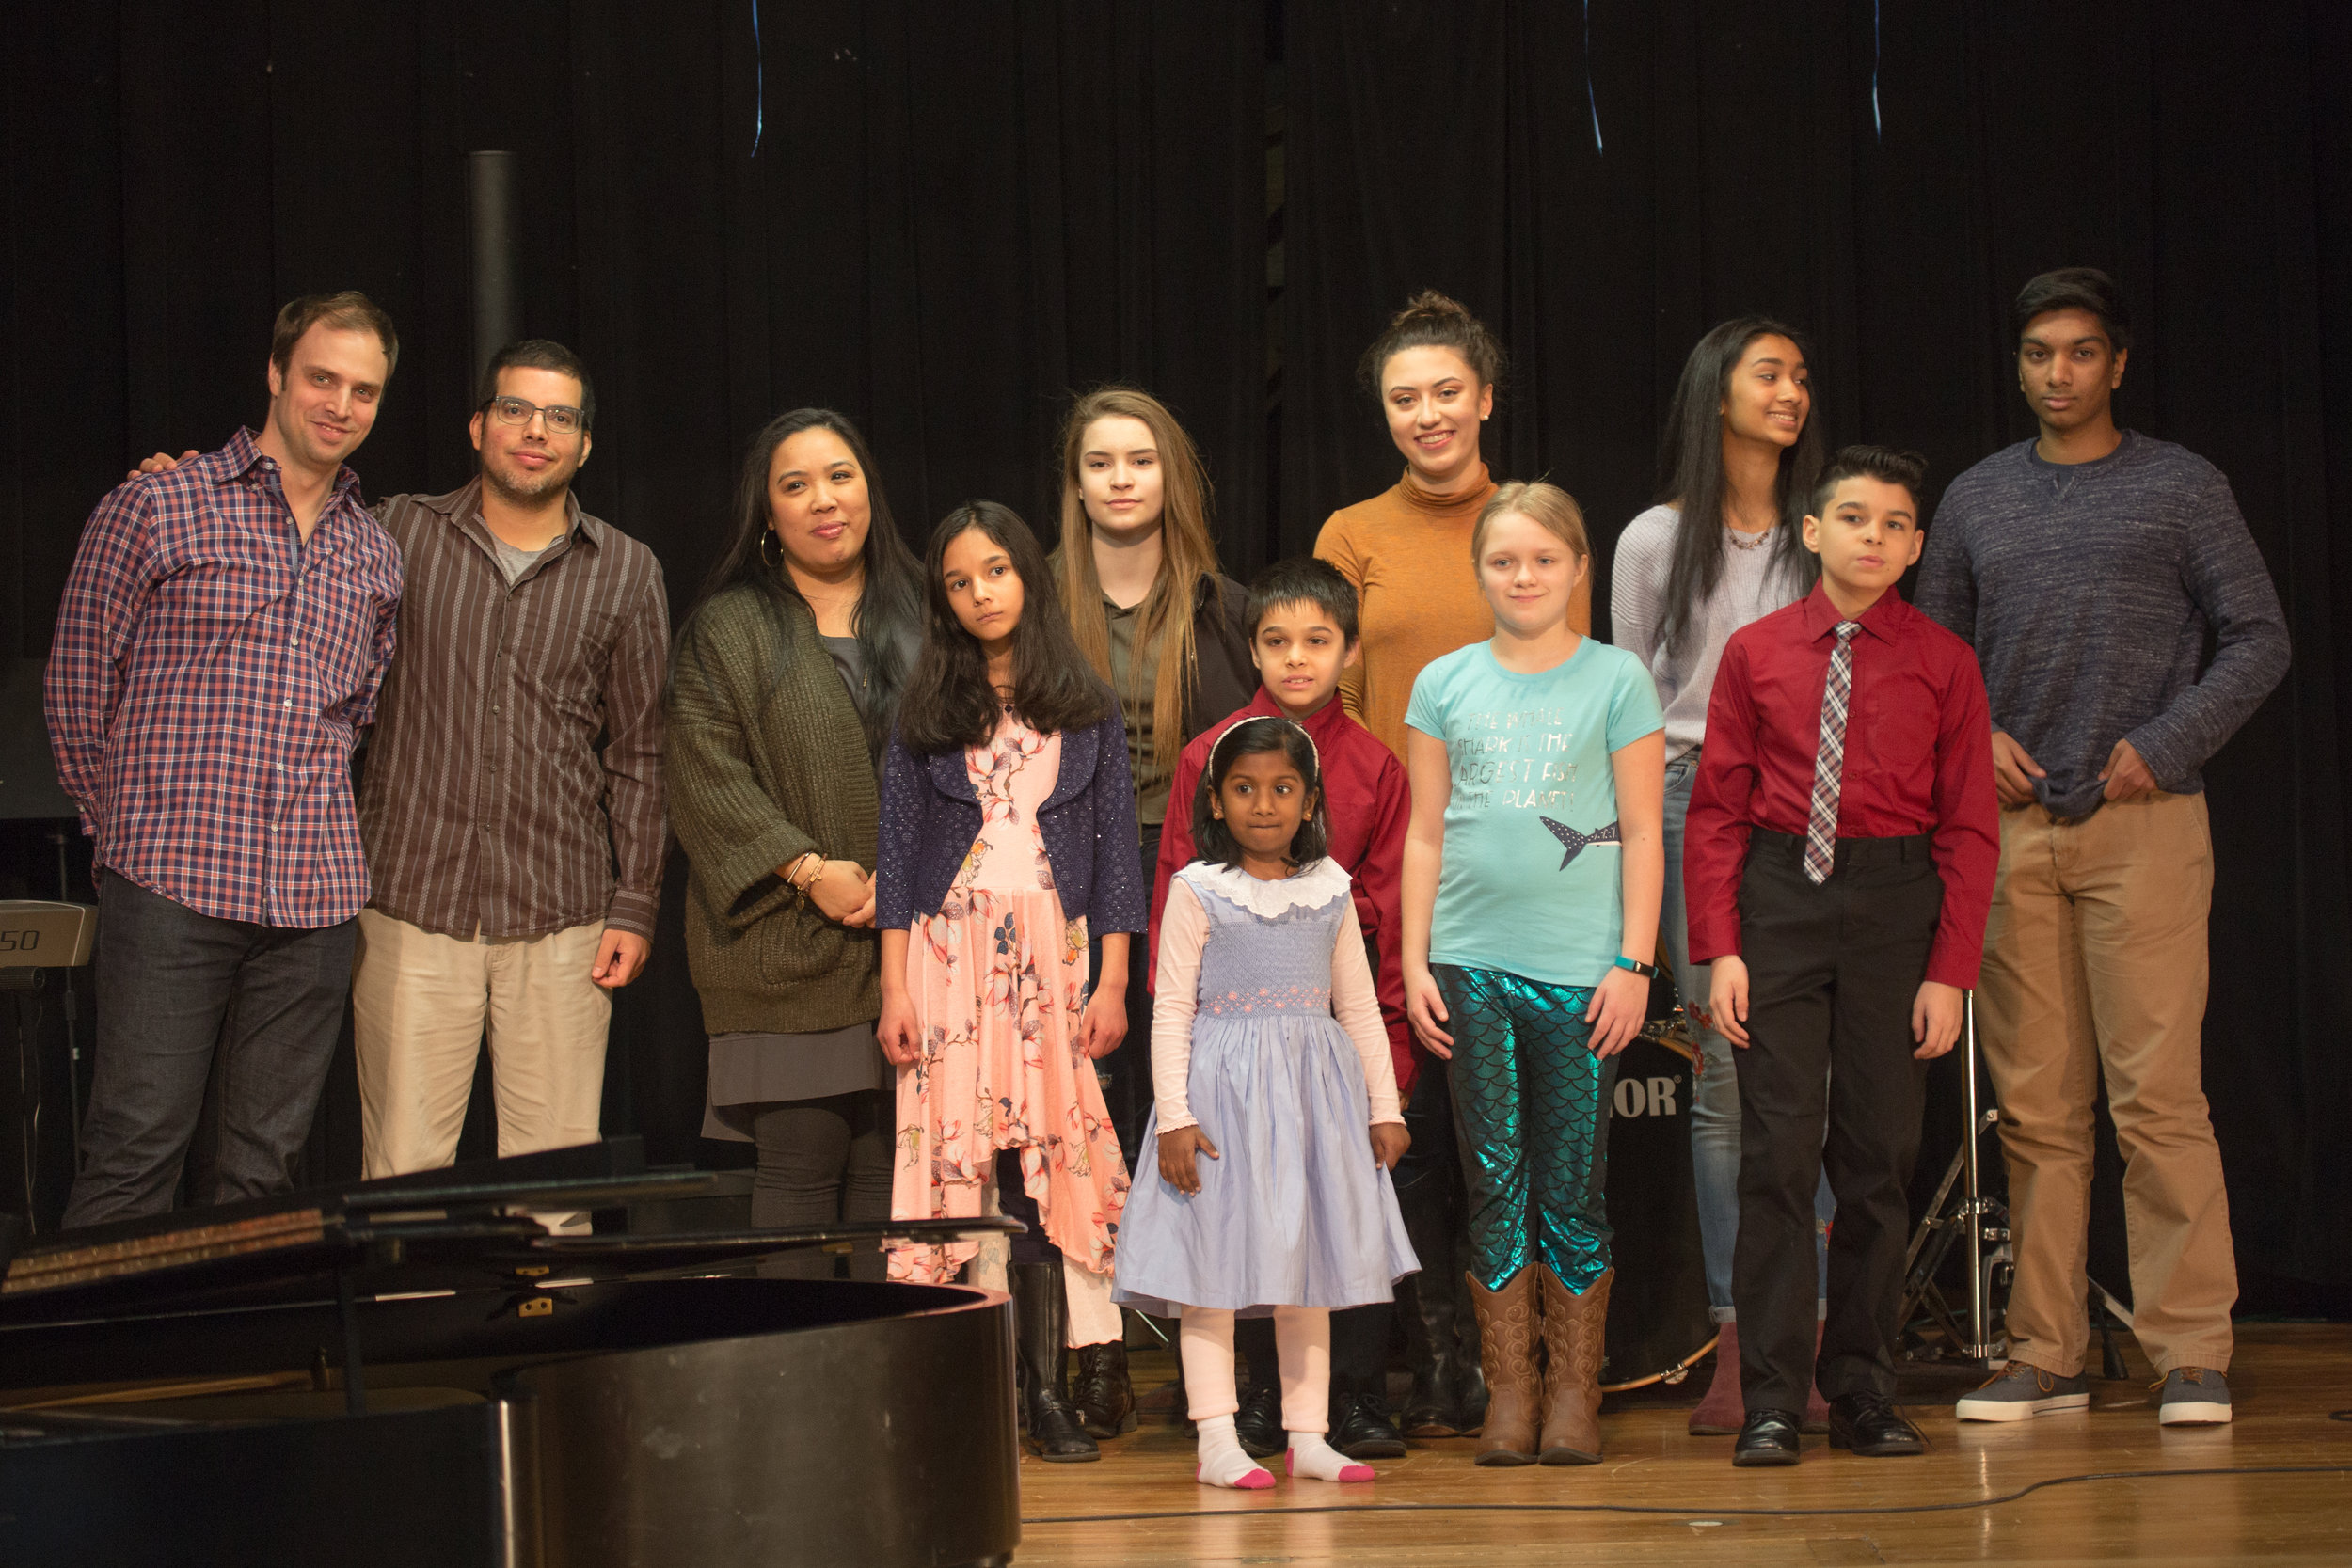 Vanguard Recital 2.3.18-27.jpg